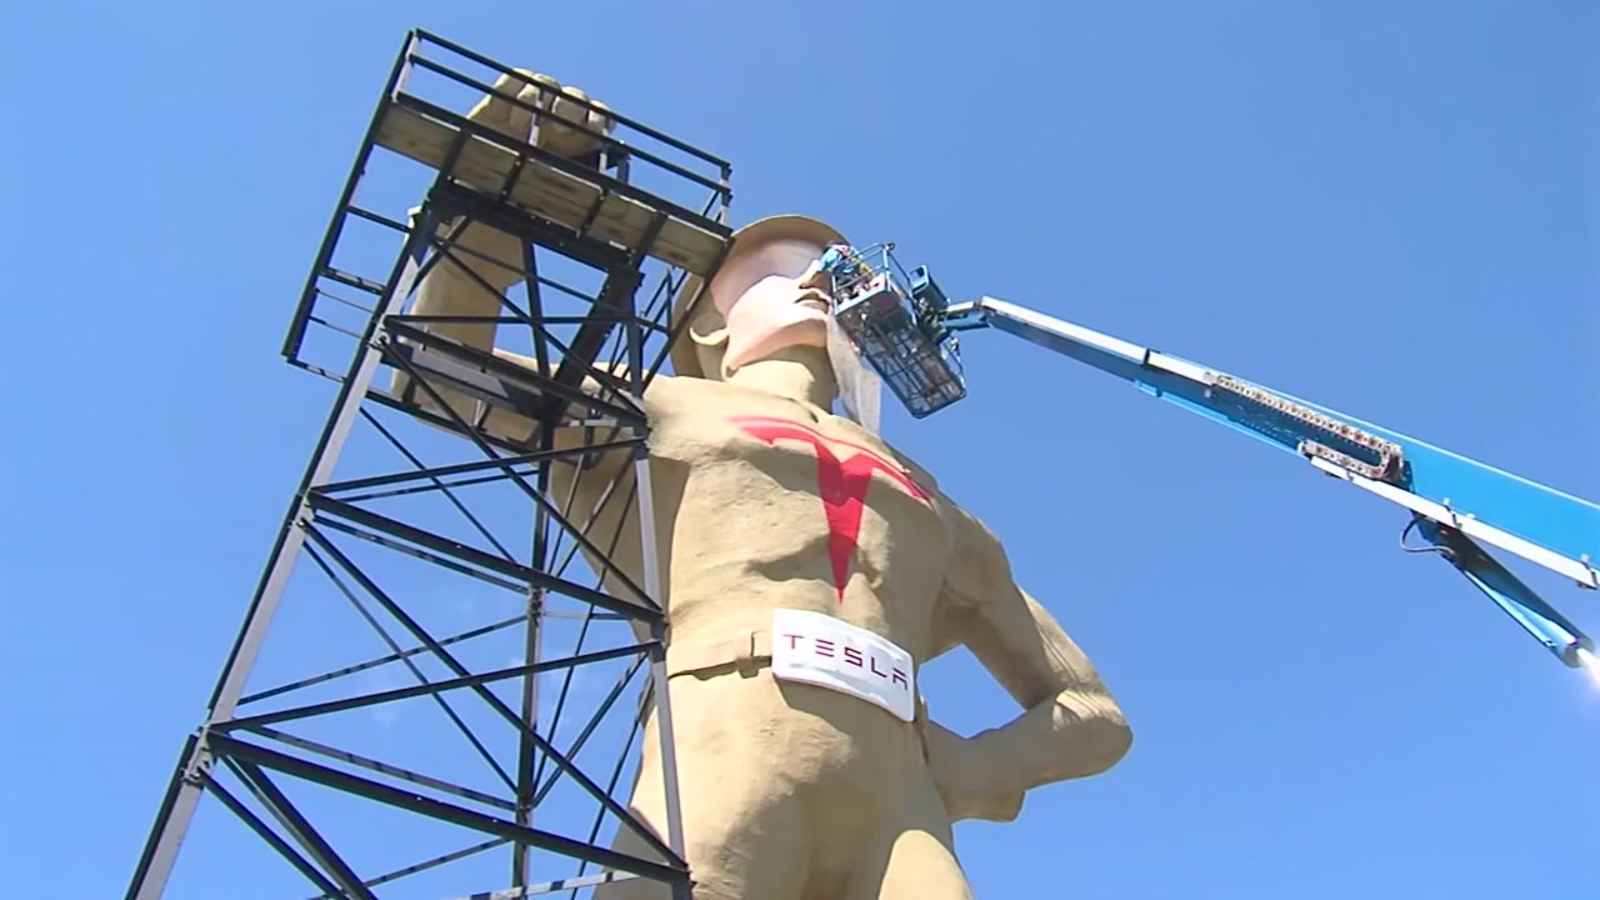 Tulsa For Tesla Us Oil City Uses 75 Foot Tall Statue Of Elon Musk To Persuade Ceo To Build New Electric Car Factory Abc7 San Francisco